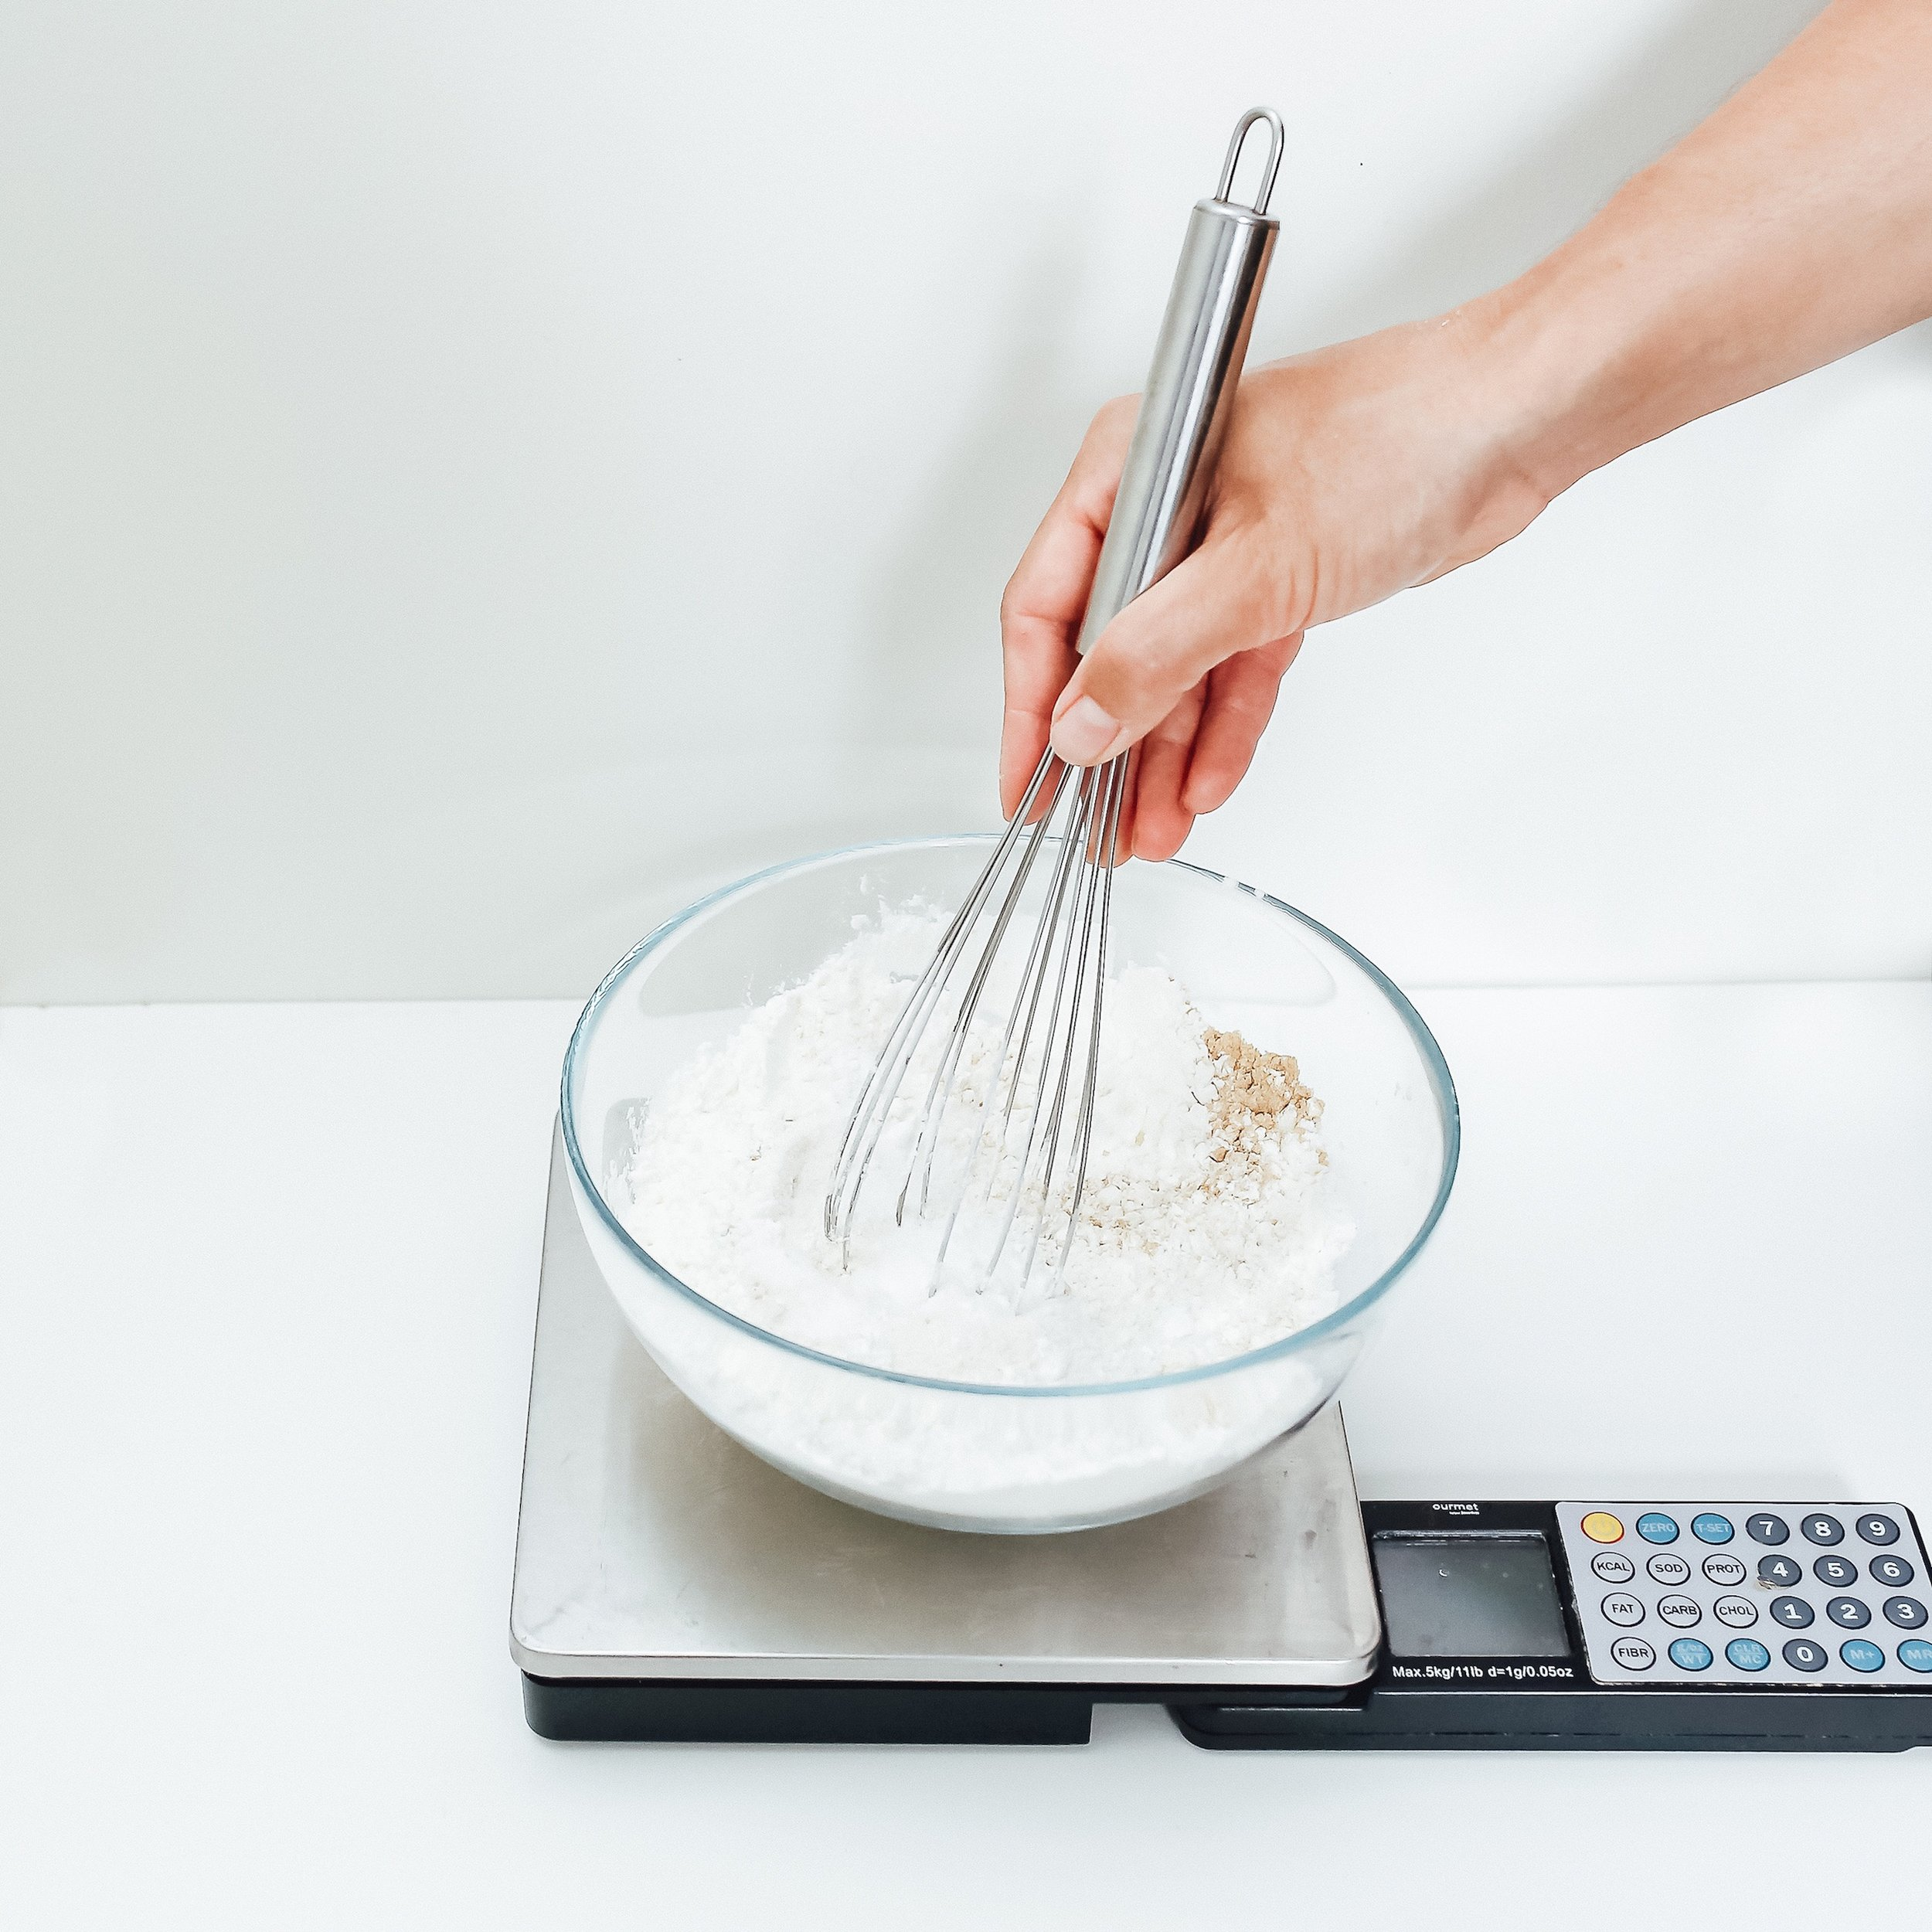 Use a scale to measure dry ingredients and then whisk thoroughly to mix well